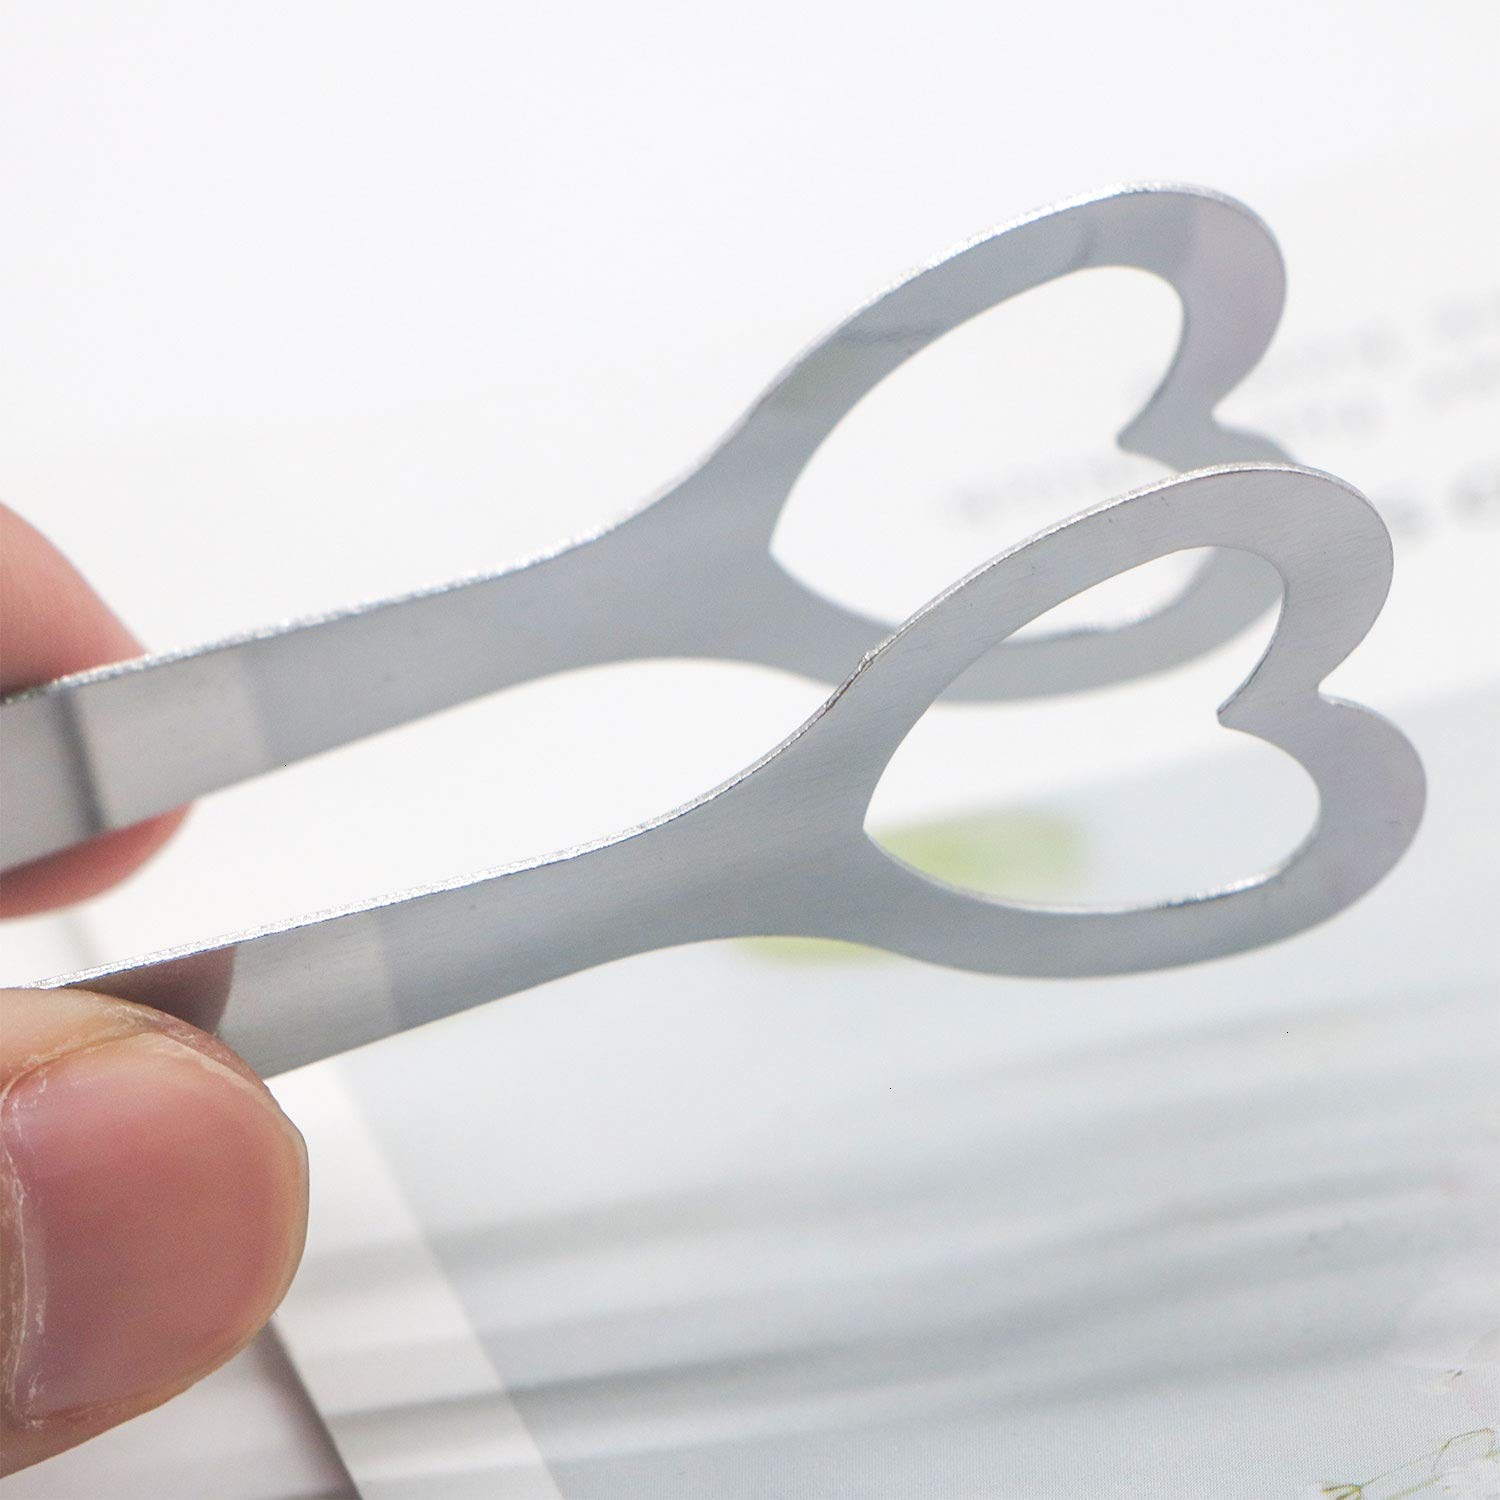 HUELE 3 Pcs Mini Stainless Steel Ice Sugar Tongs Serving Tongs Heart Shape for Kitchen Party Silver